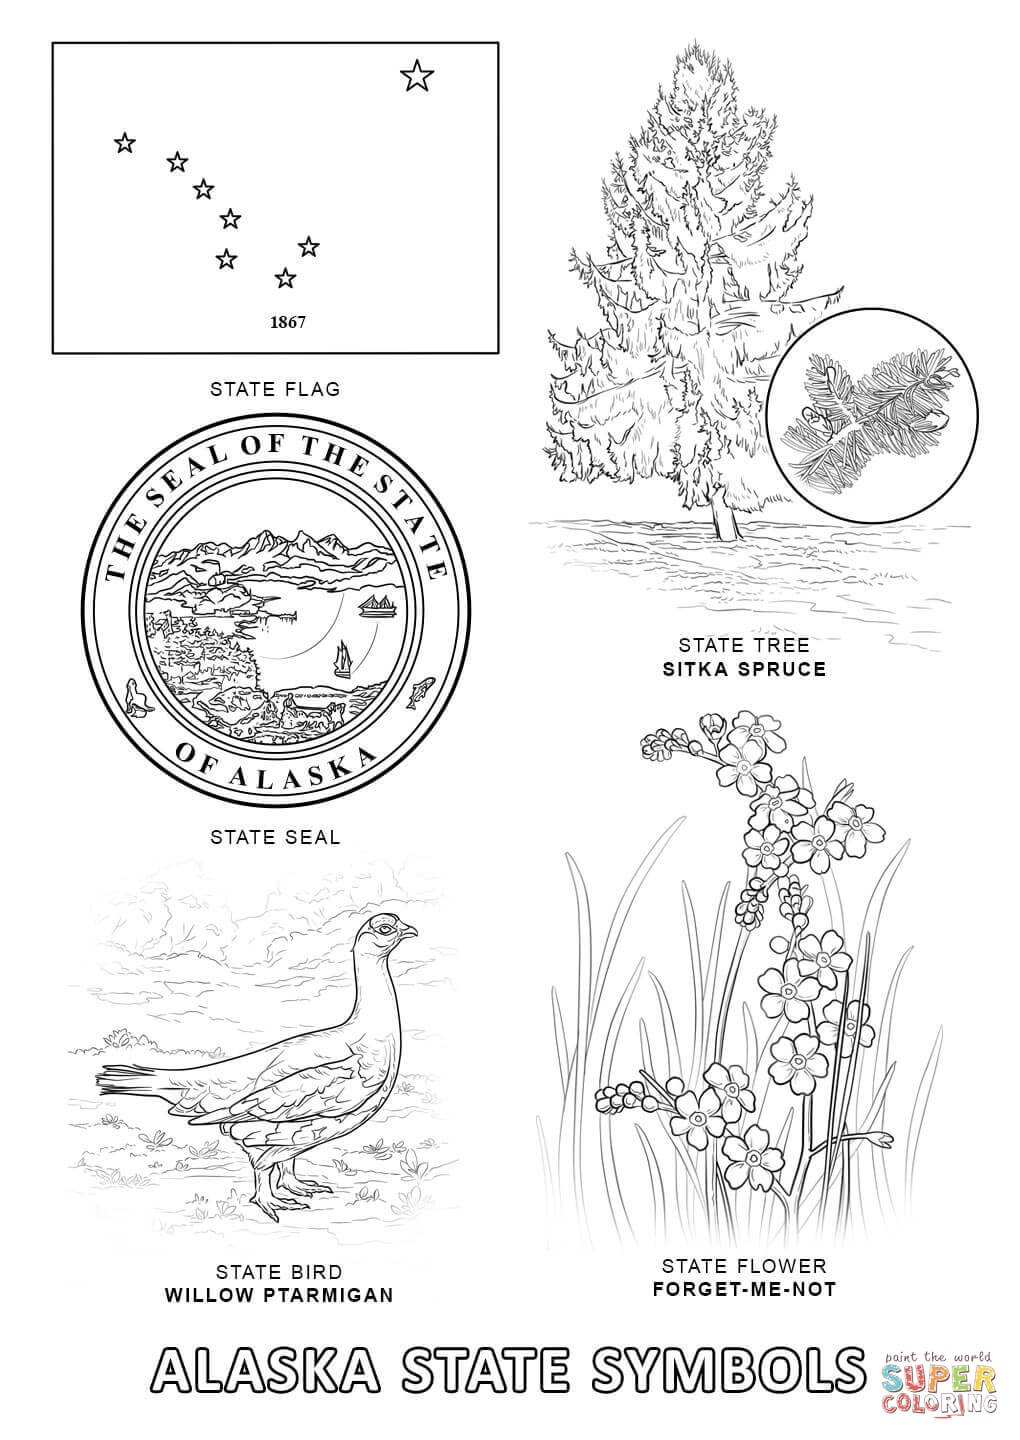 Alaska State Symbols Coloring Page | Free Printable Coloring Pages - Free Printable Pictures Of Alaska